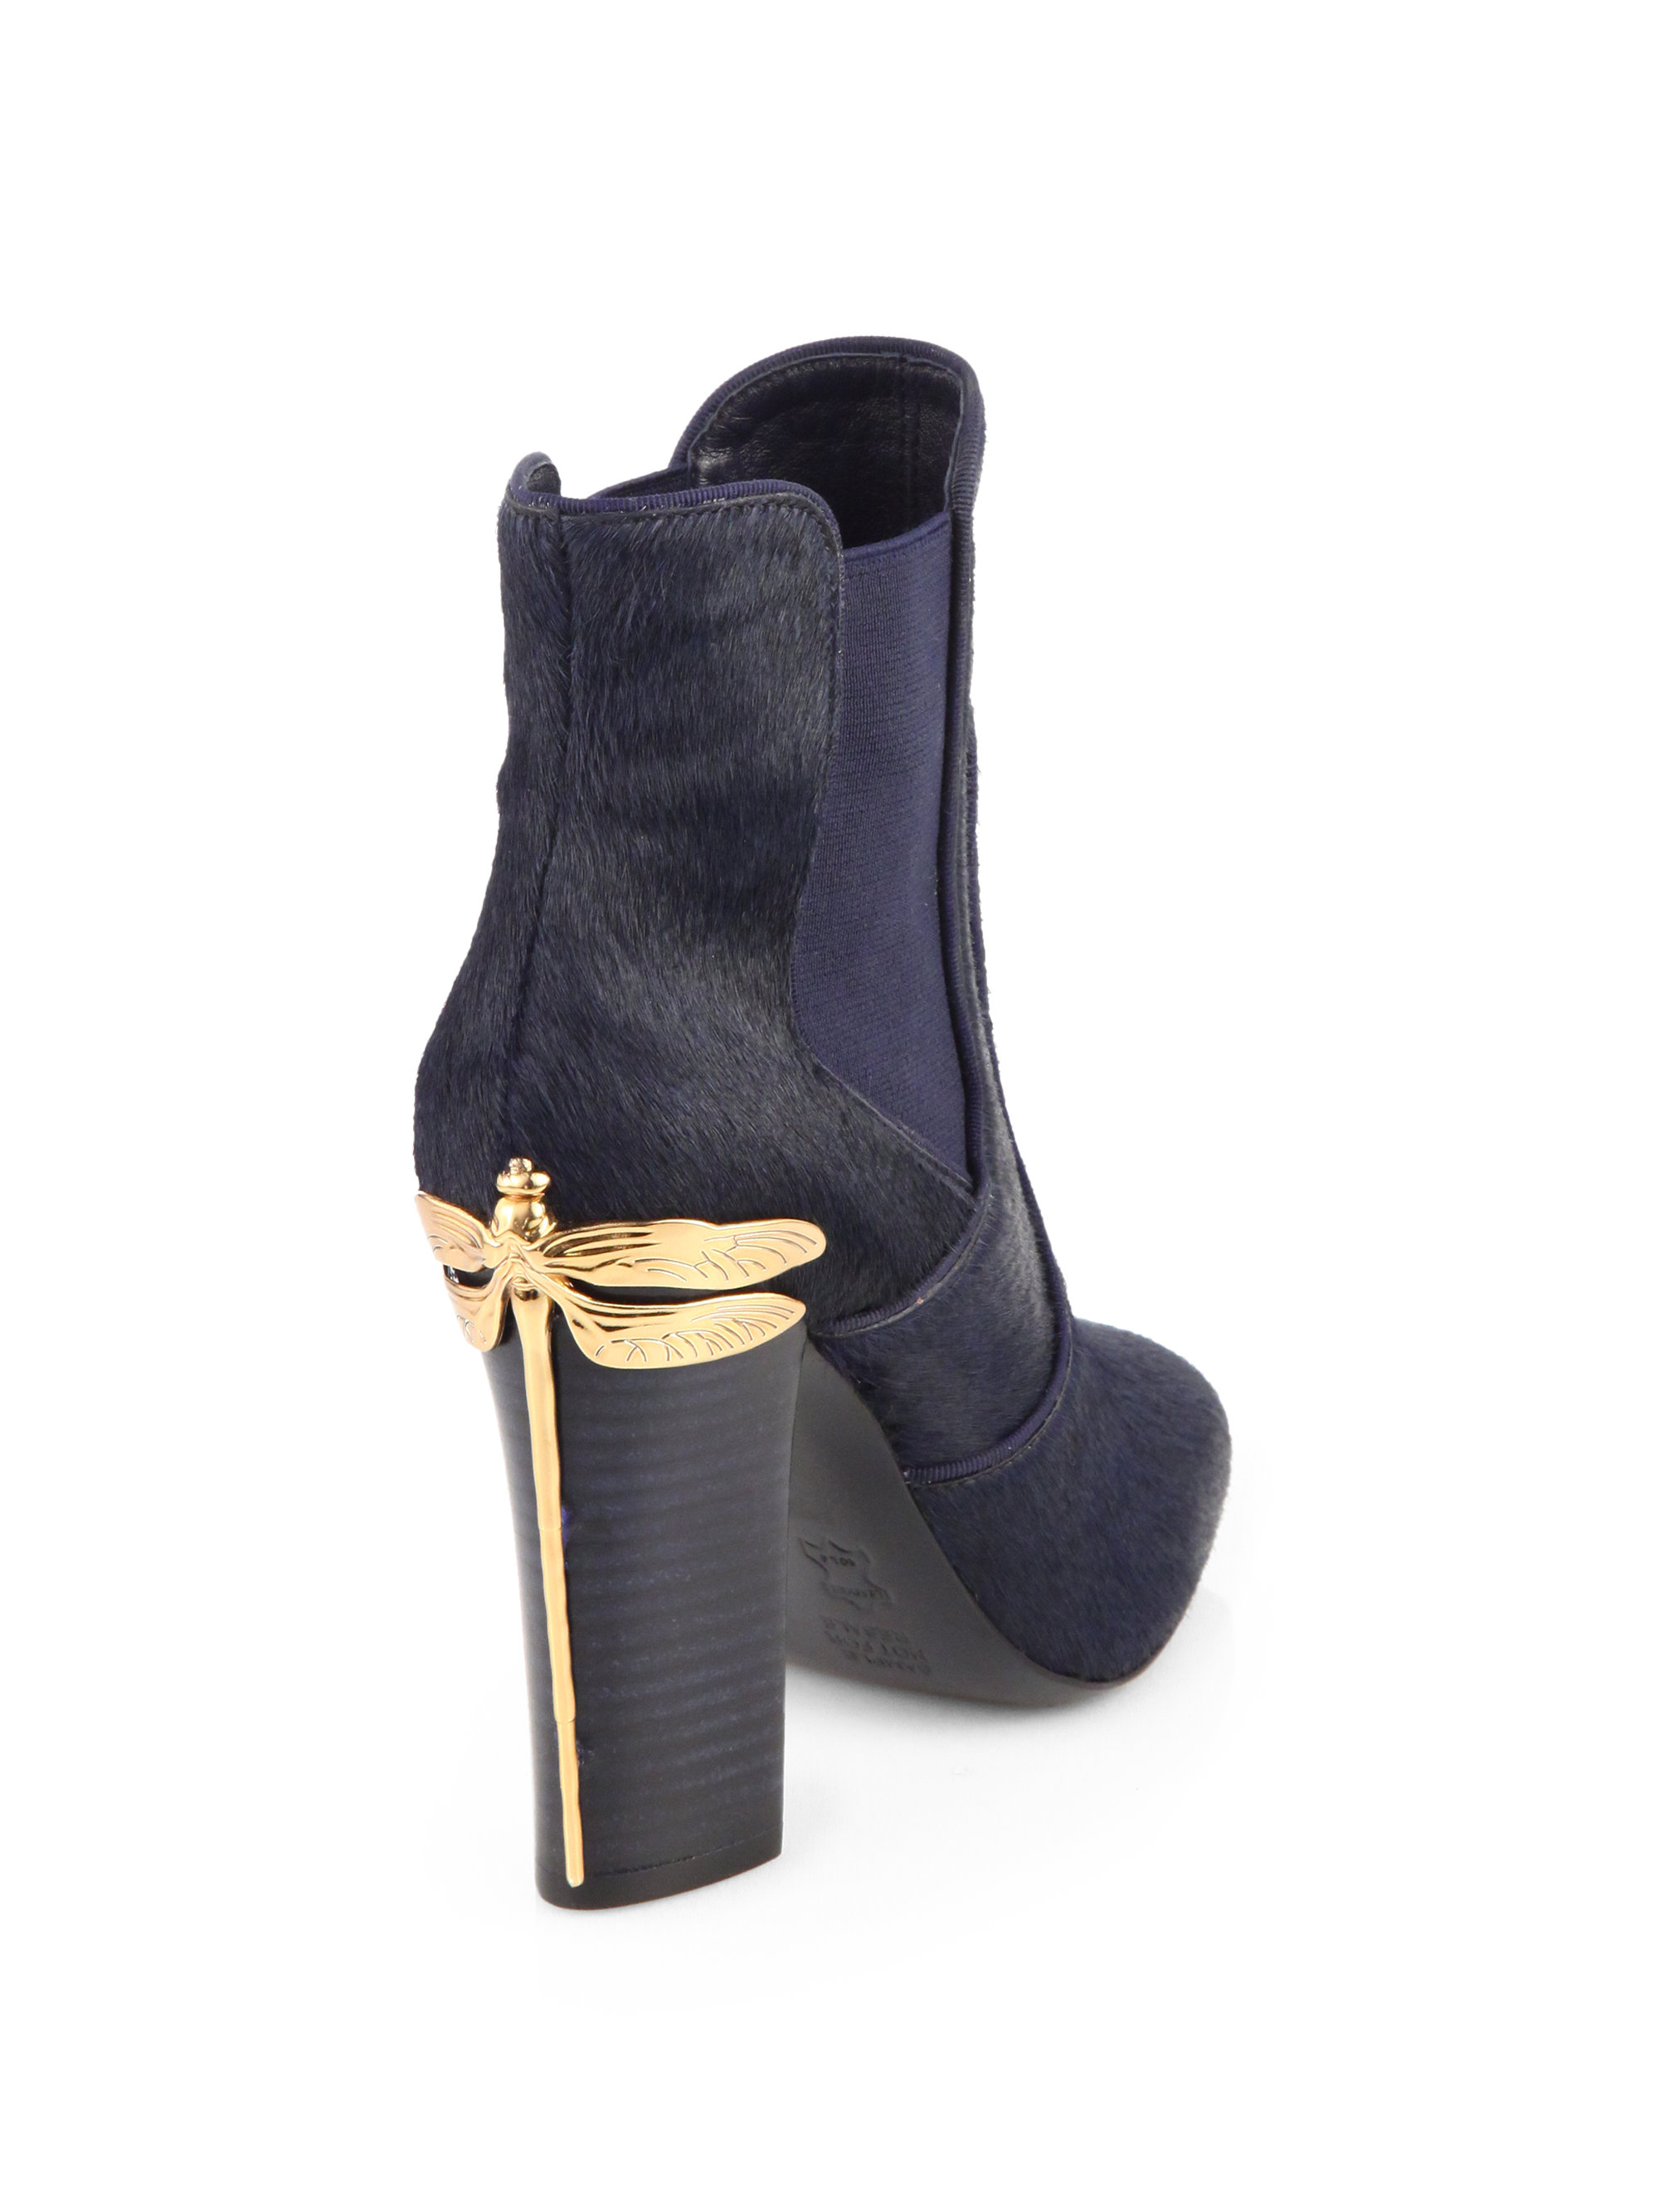 8c37731d5d7 Lyst - Tory Burch Theodora Calf Hair Ankle Boots in Blue